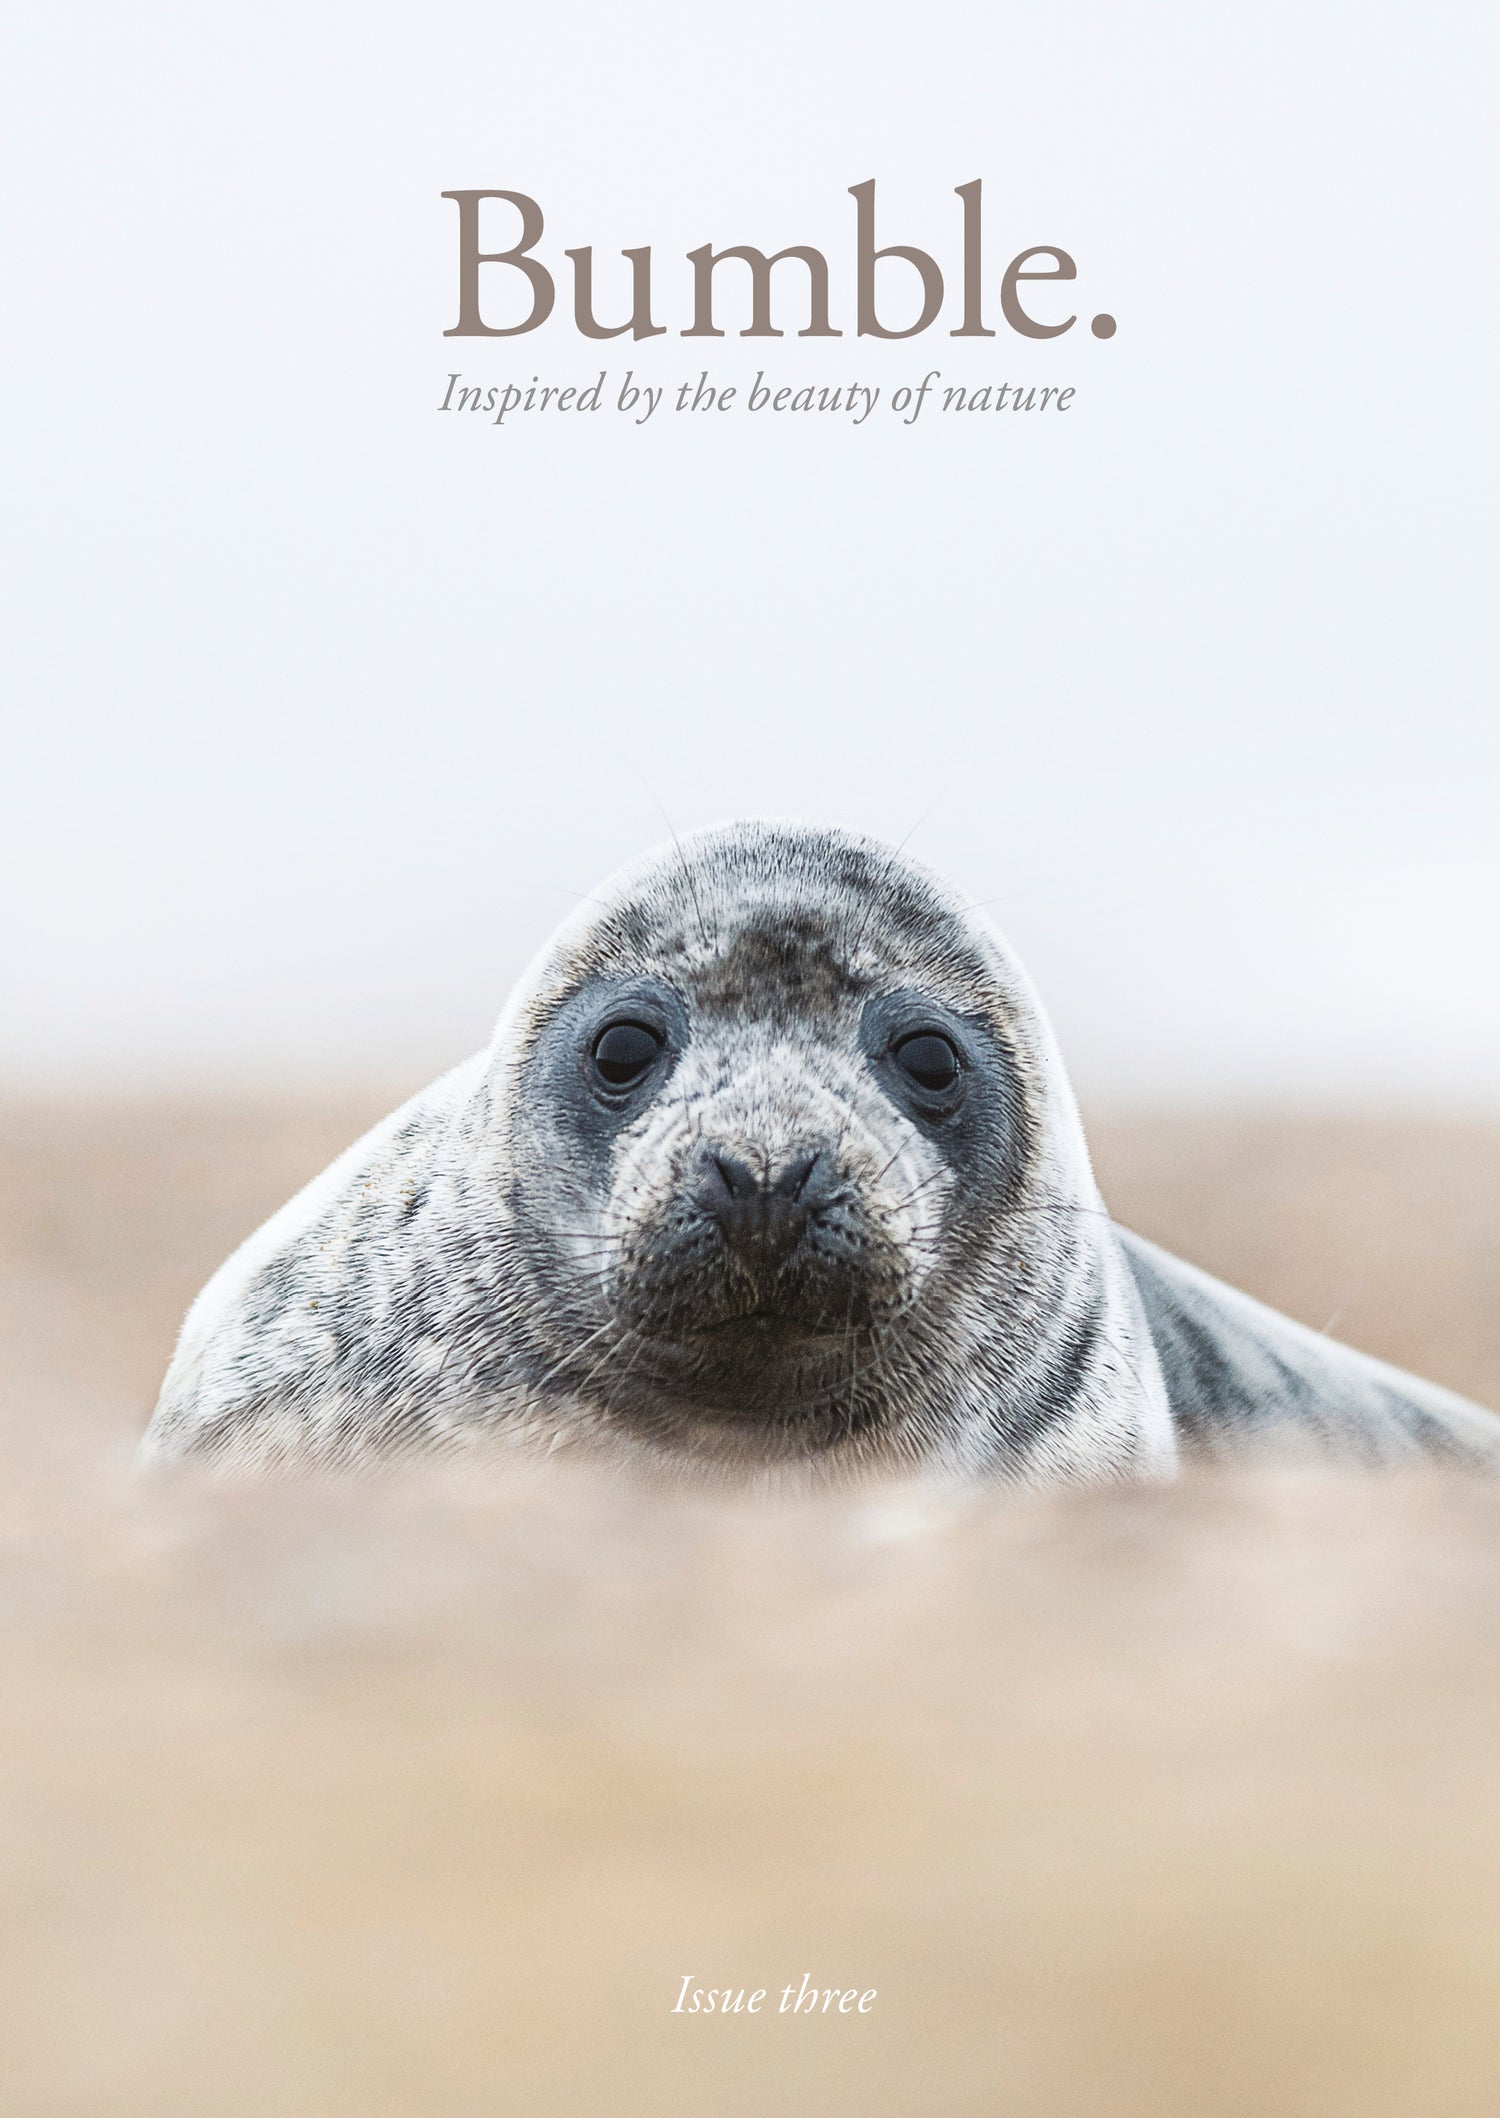 Image of Bumble Issue Three